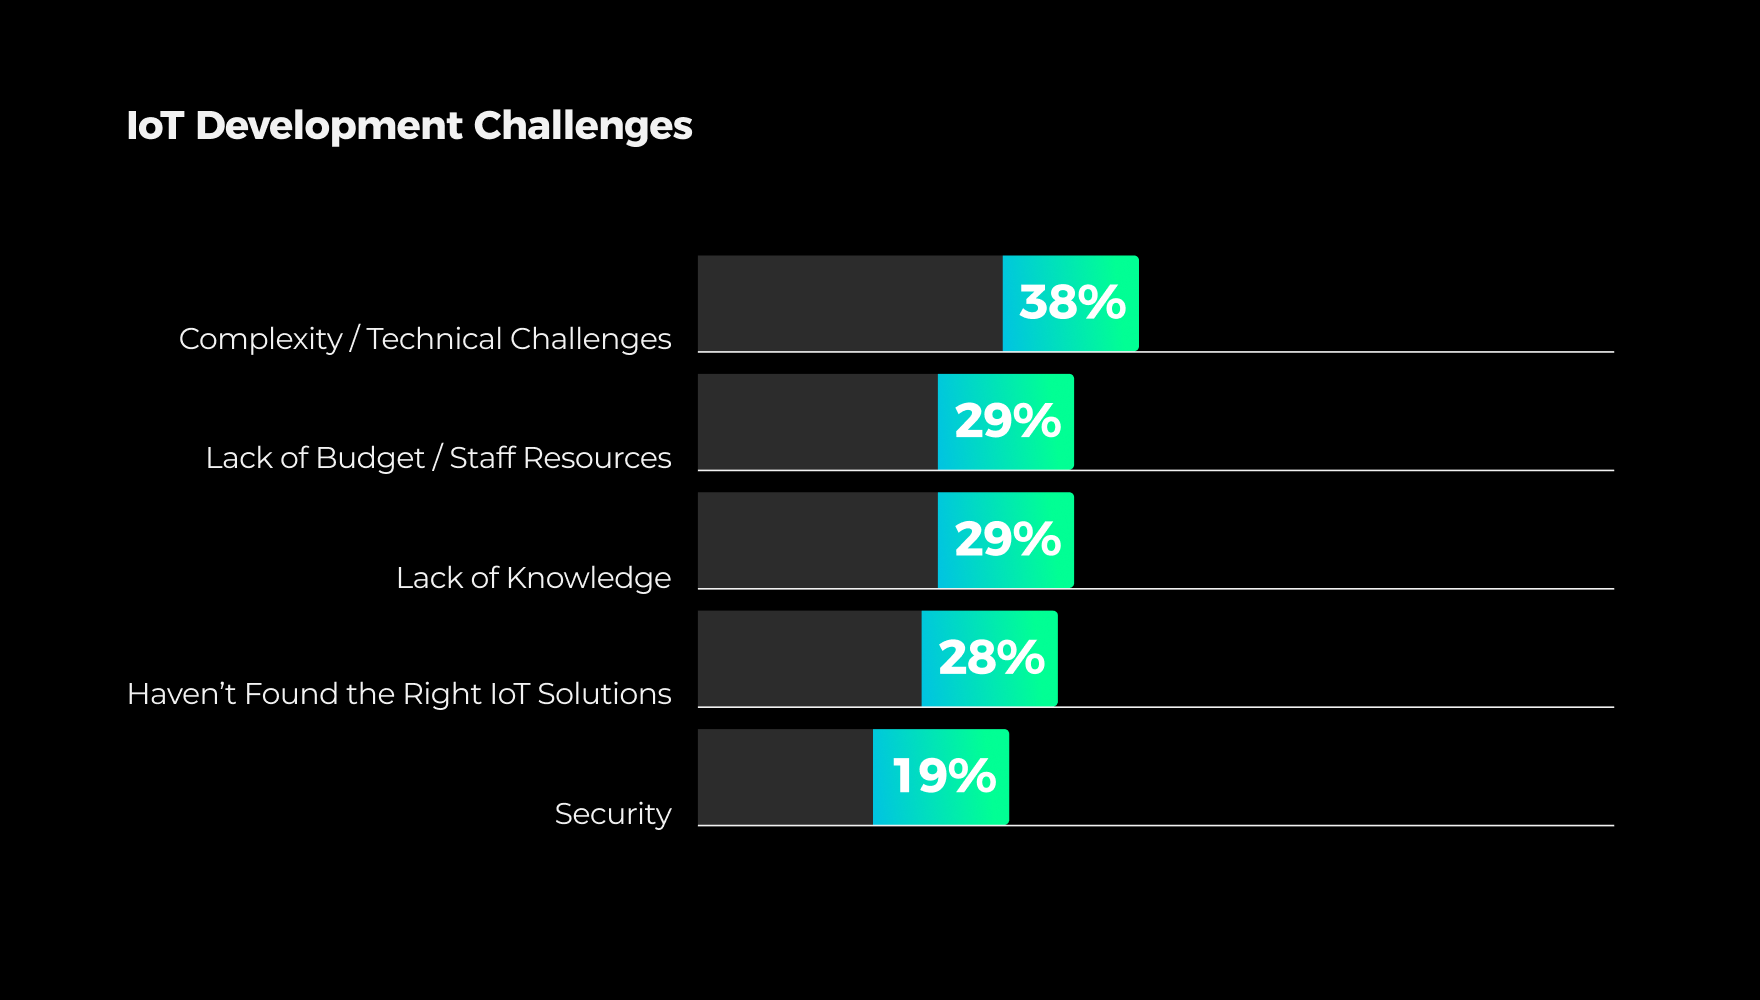 Microsoft claims the lack of technical expertise and resources remains a key barrier to IoT adoption for 50% of the respondents.